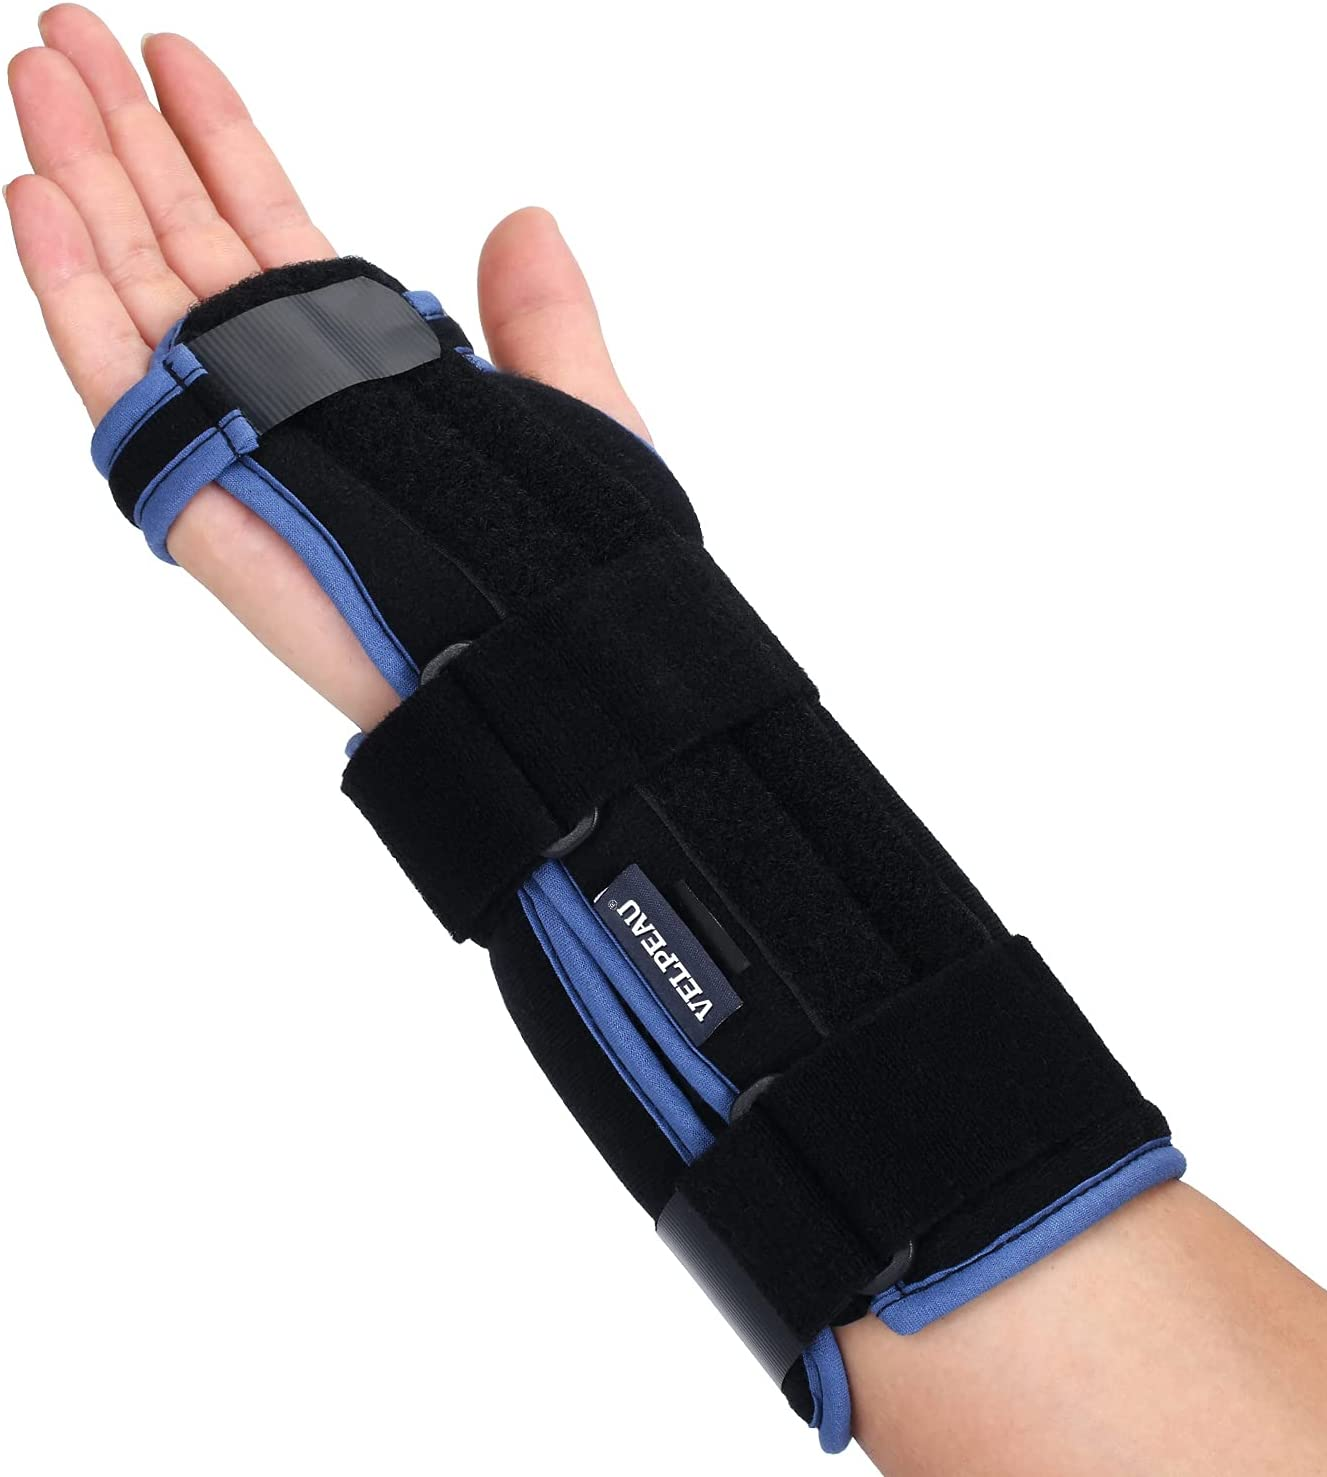 VELPEAU Carpal Tunnel Wrist Brace for -Night Max 46% OFF Sleep Don't miss the campaign Support